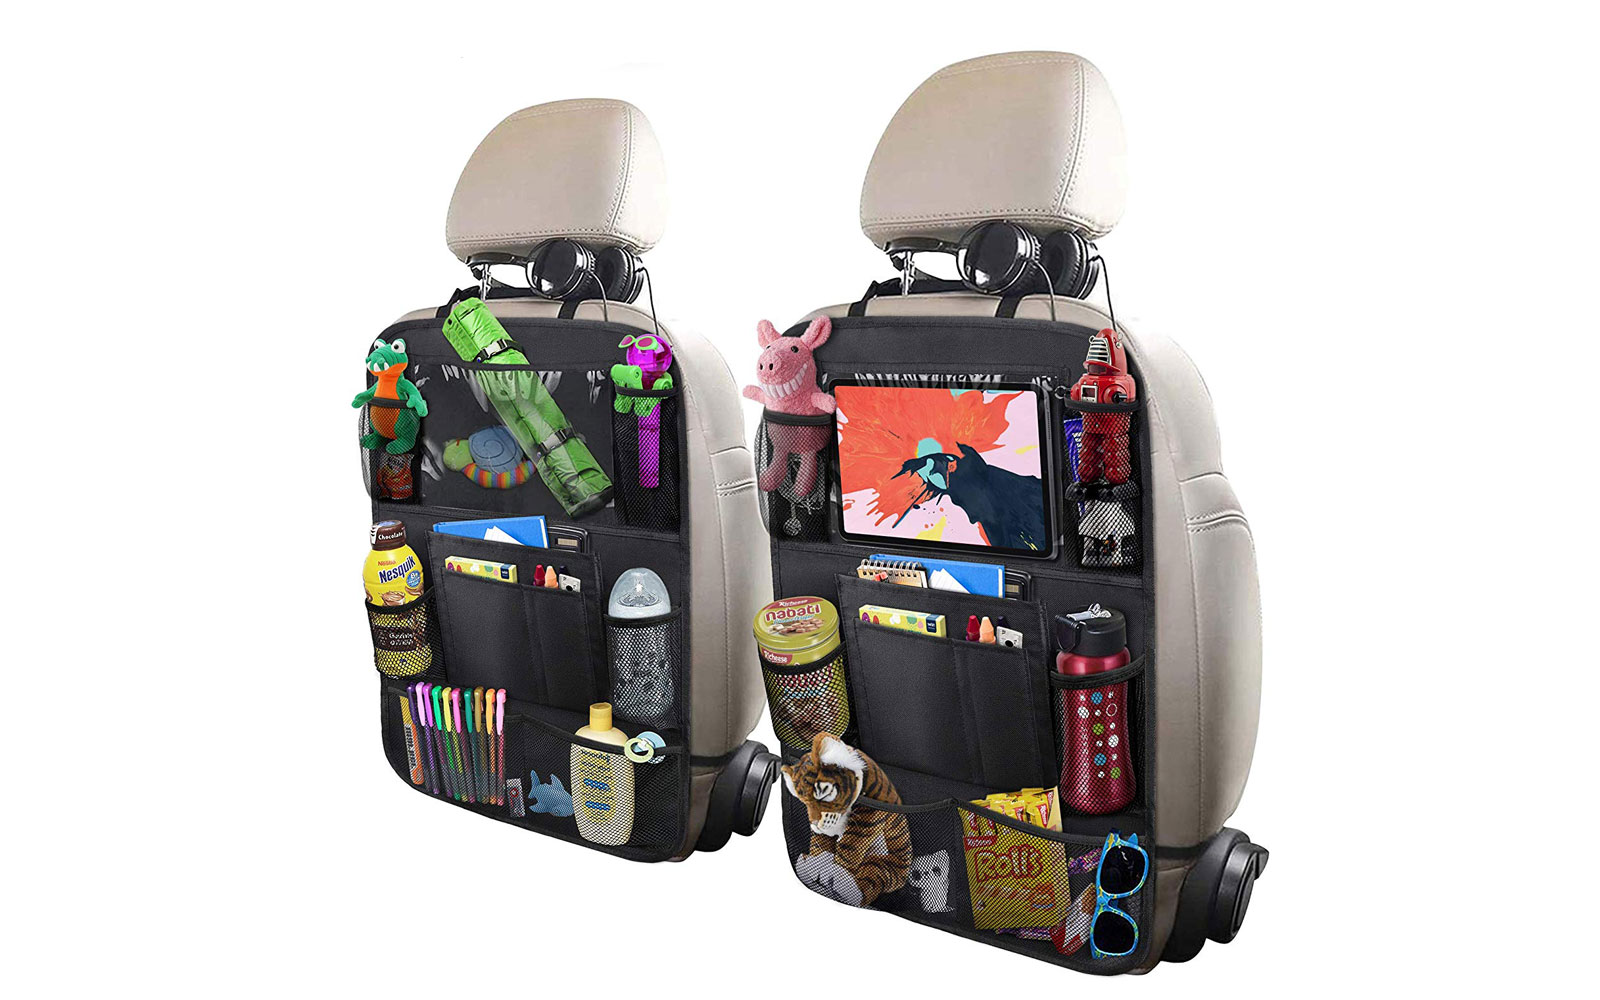 Uleeka Car Backseat Organizer